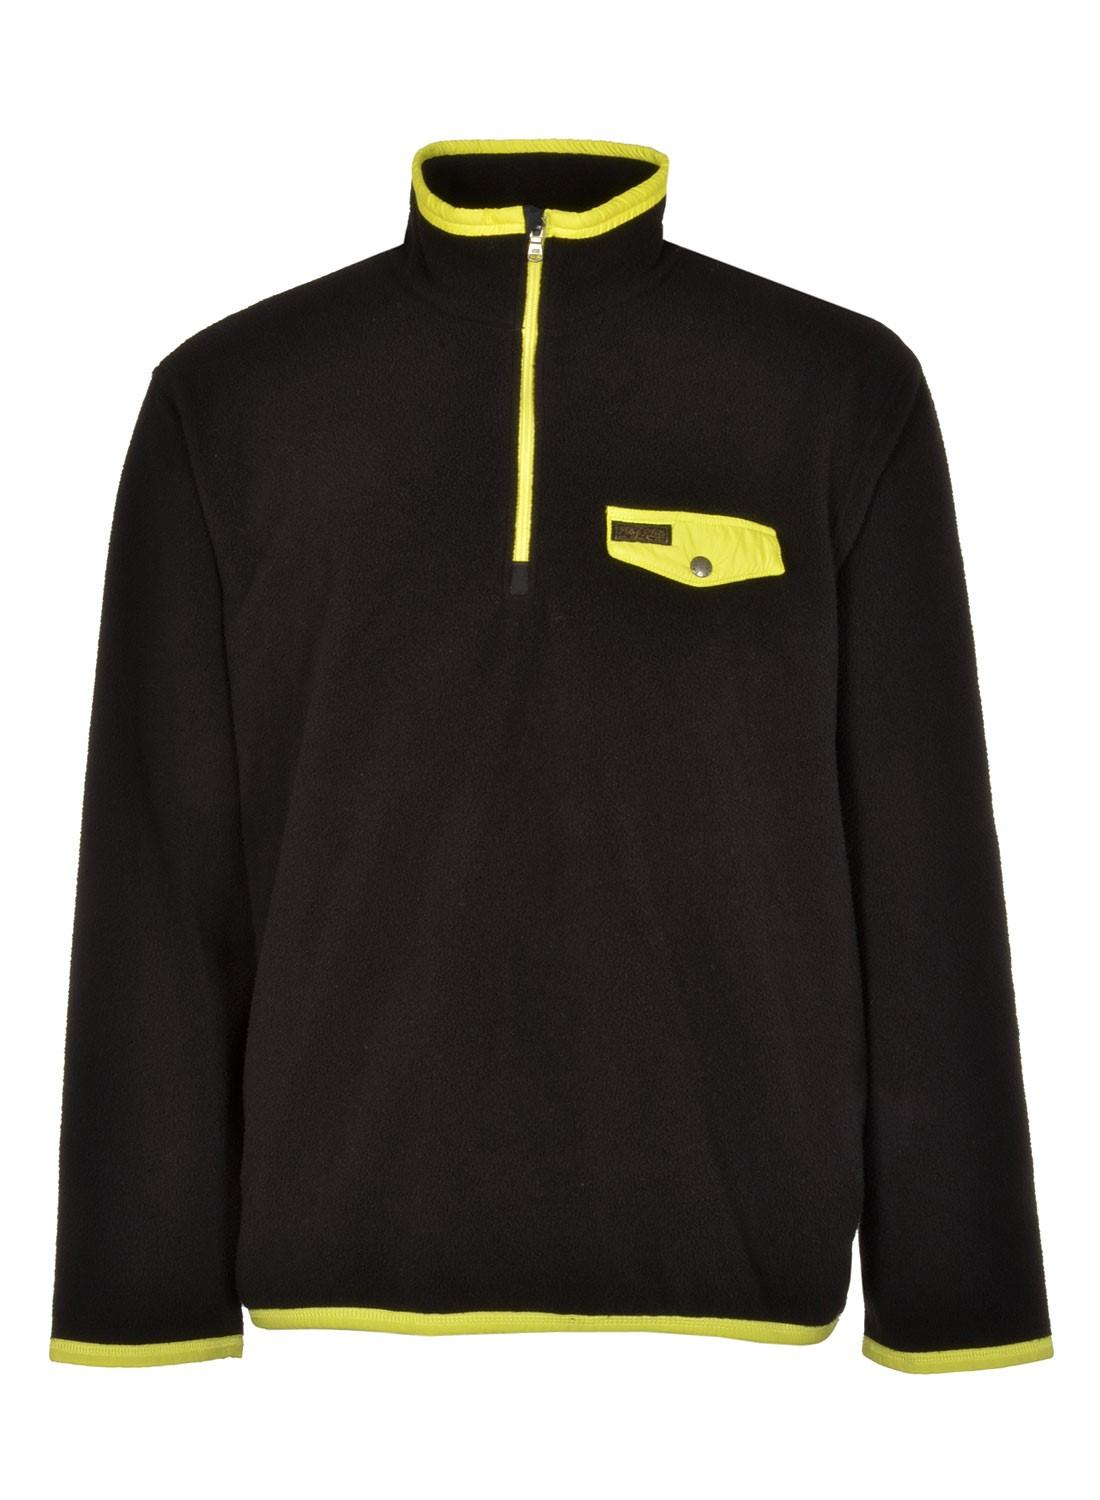 2ad51e9a5 Polo Ralph Lauren - Big And Tall Fleece Sweatshirt Black And Yellow 3xlt  Tall for Men